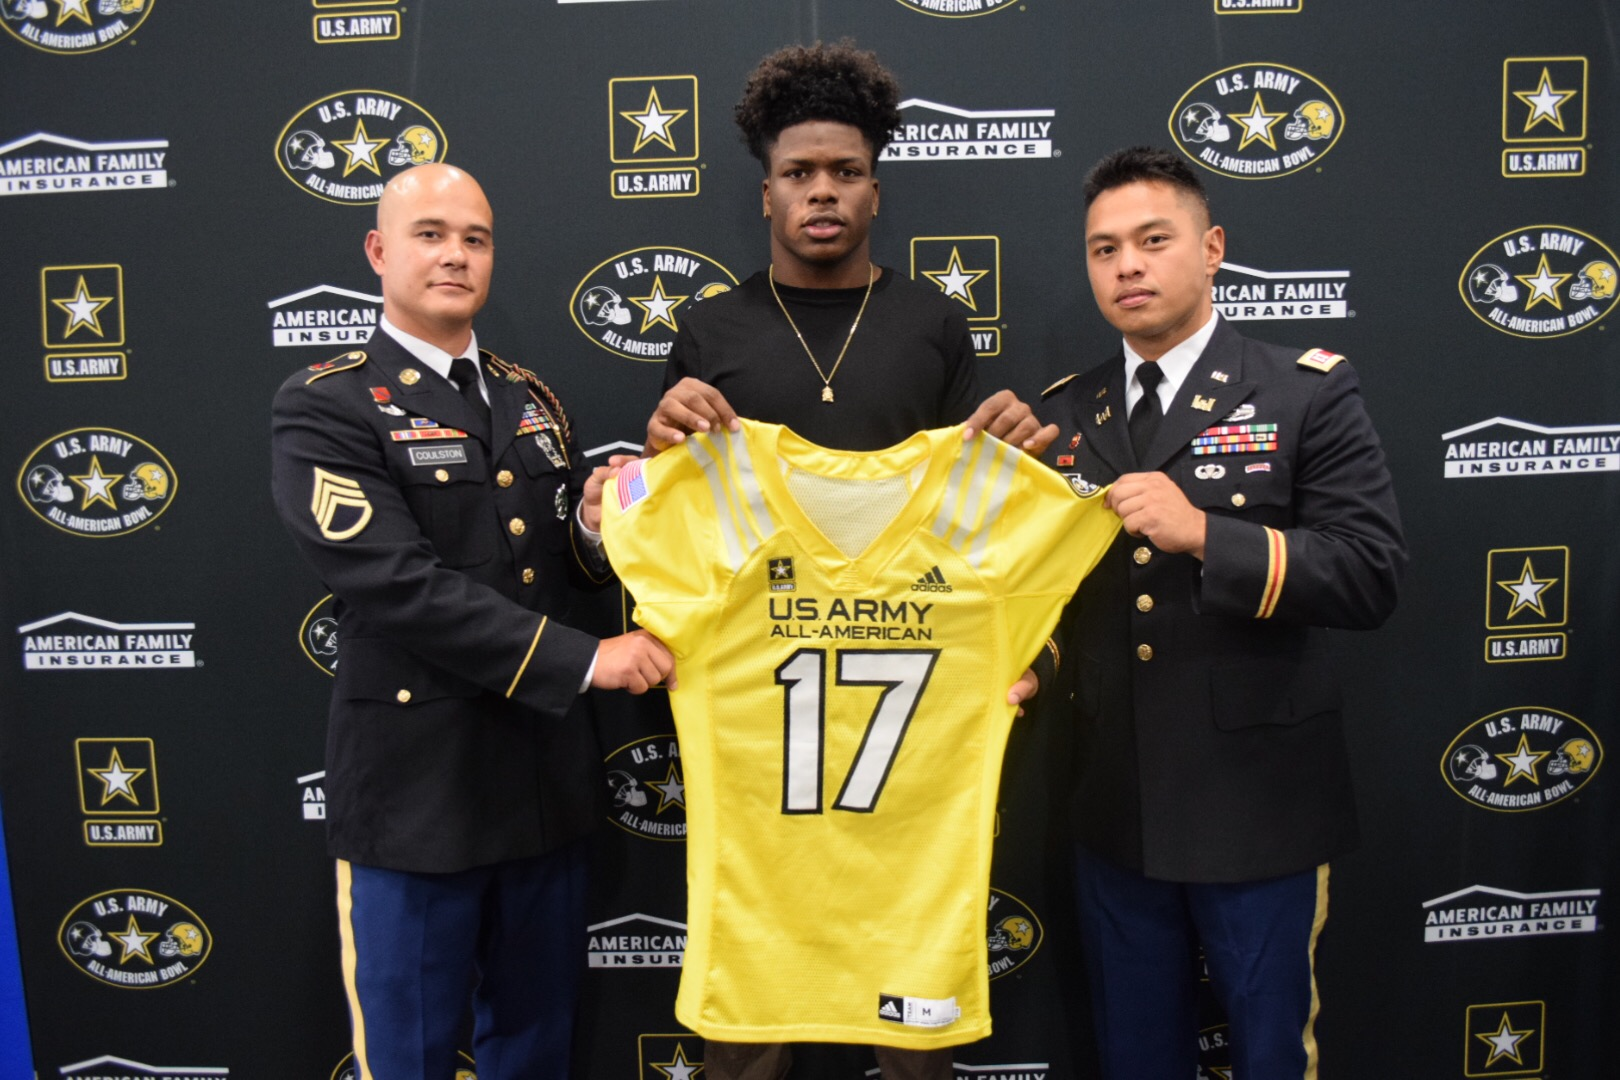 Stephen Carr is presented with his honorary jersey for the U.S. Army All-American Bowl (Photo: Army All-American Bowl)